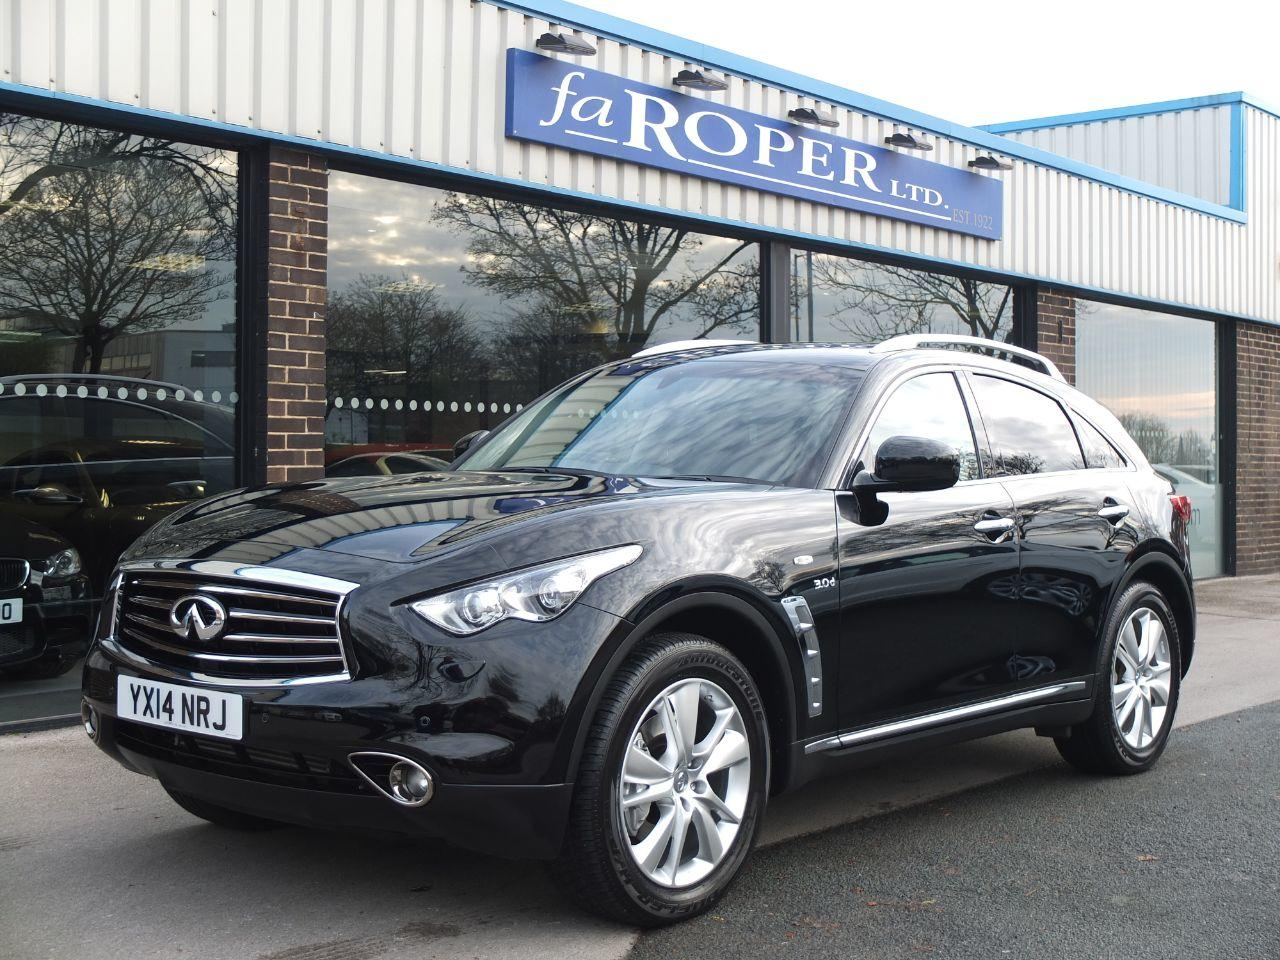 Infiniti Qx70 3.0d GT Auto (Multimedia Pack) Four Wheel Drive Diesel Black